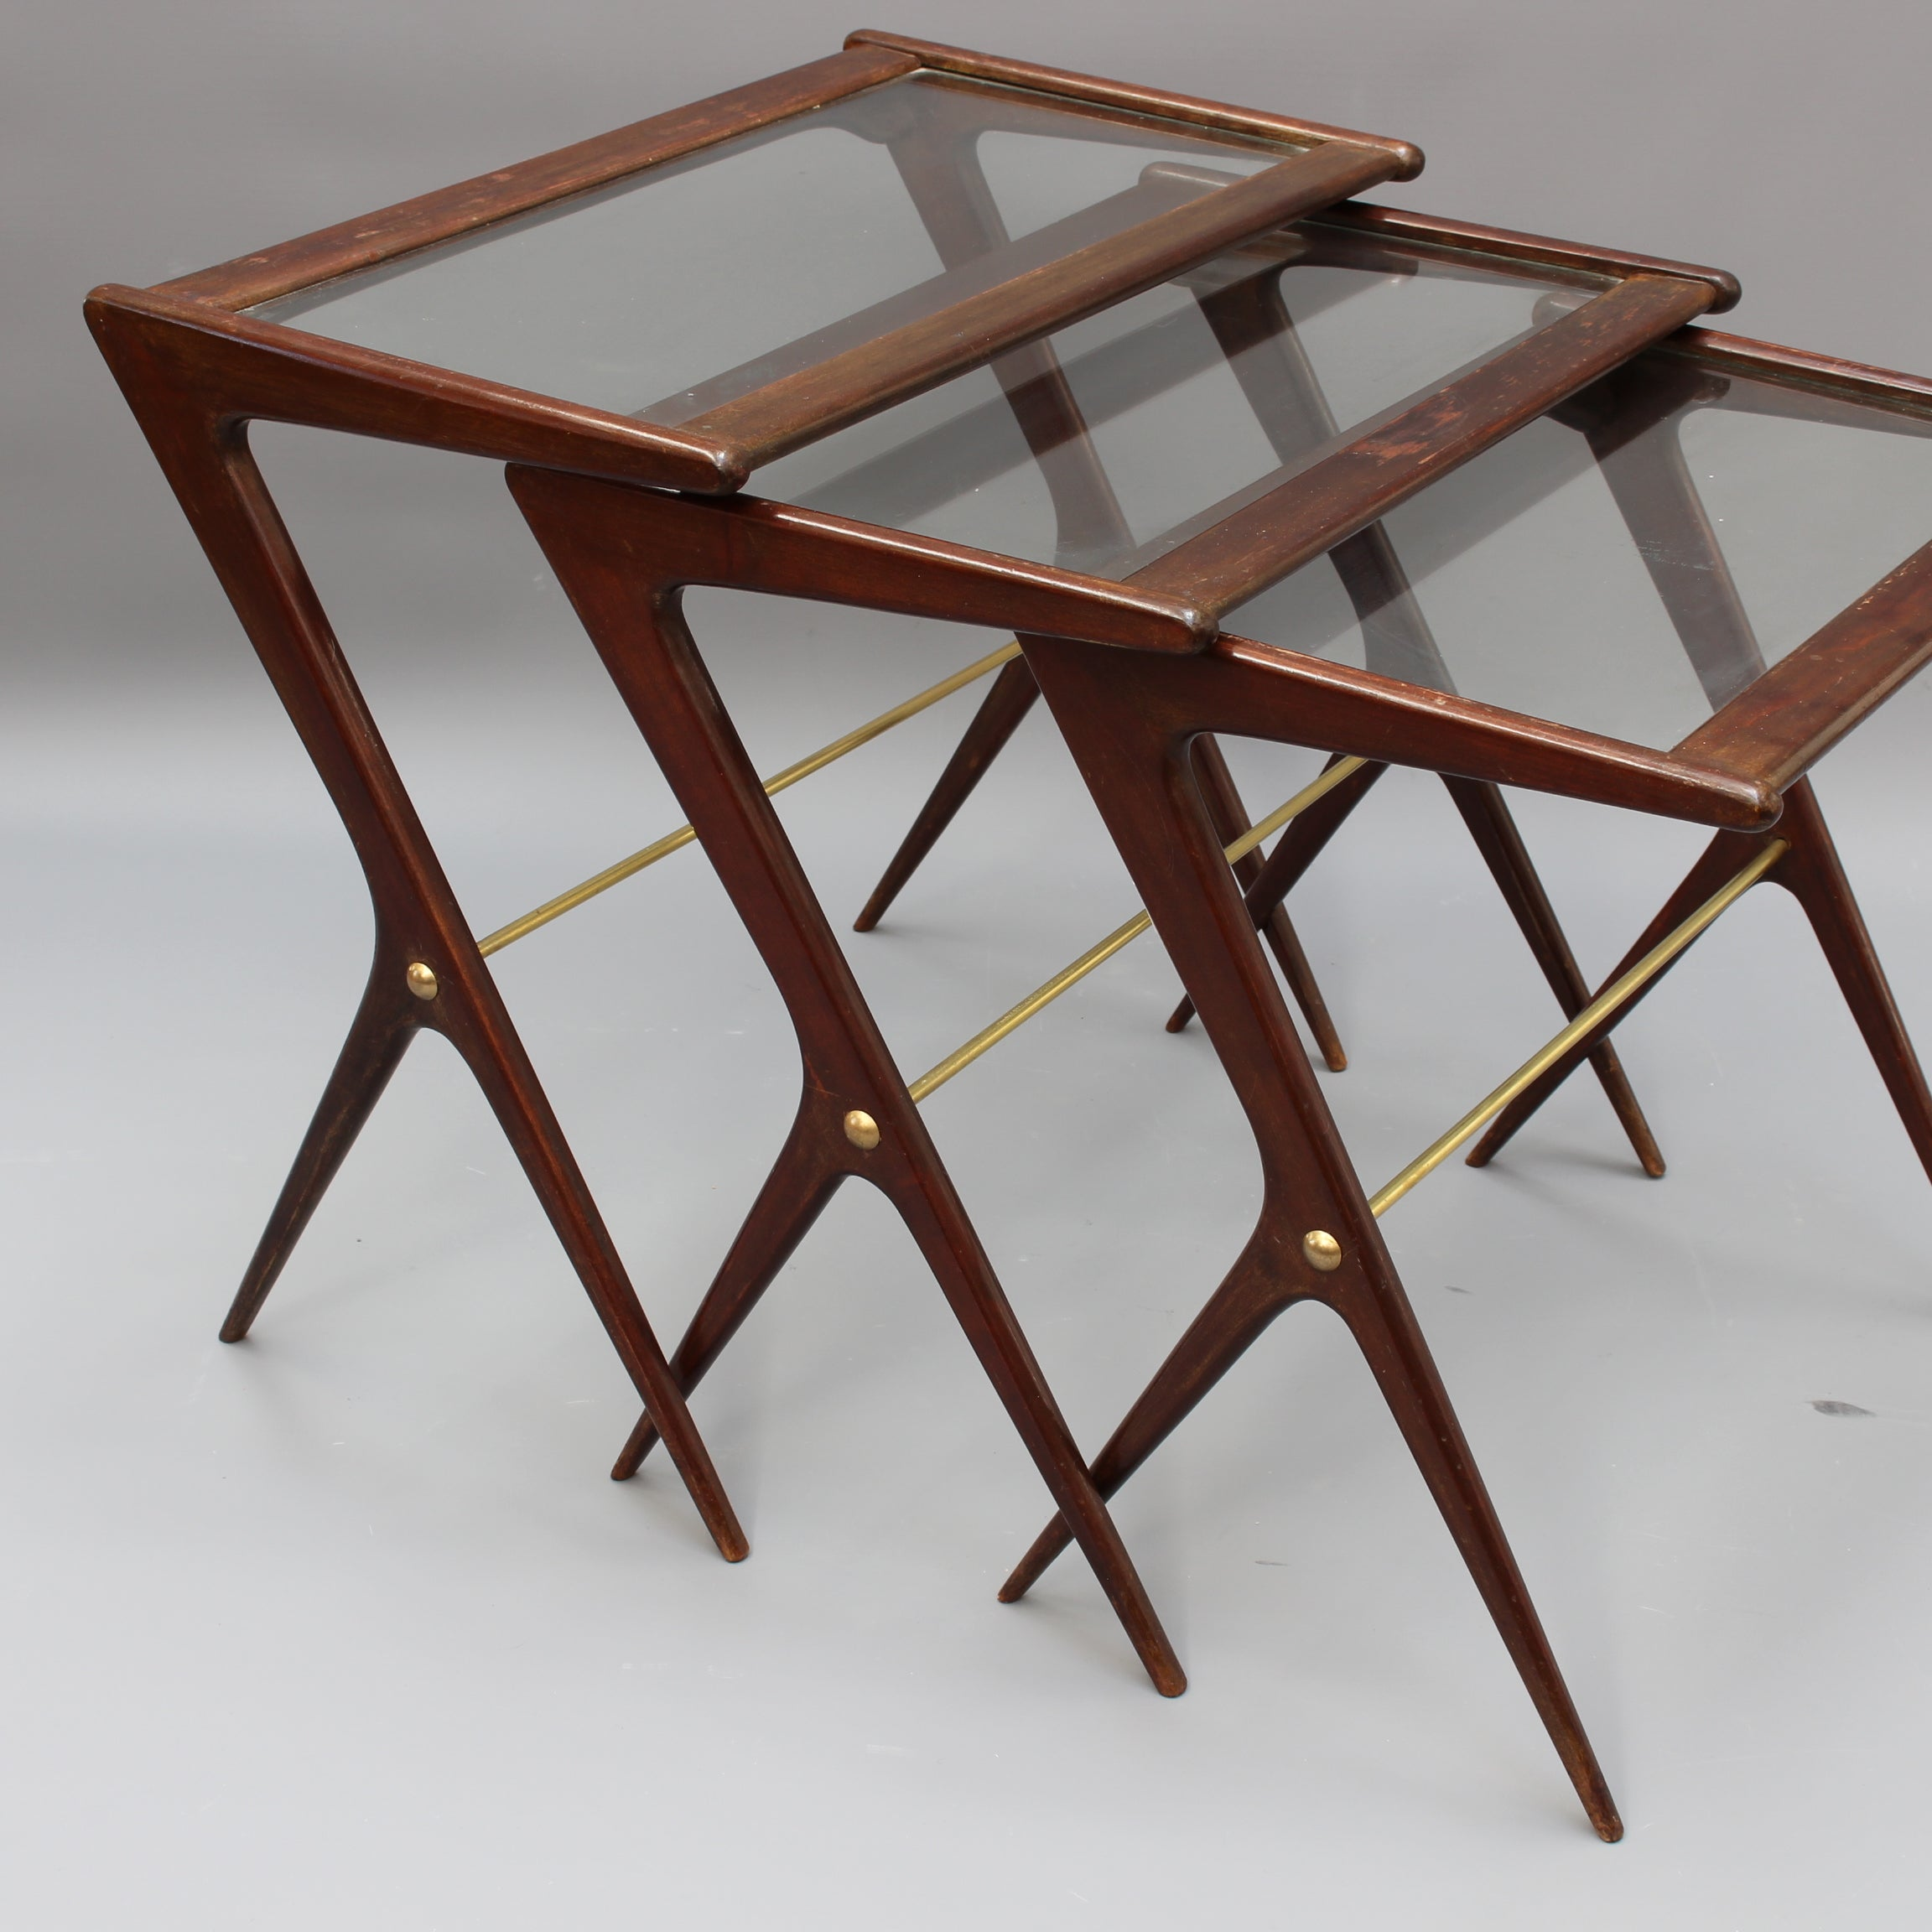 Set of Three Mid-Century Italian Nesting Tables (circa 1950s)